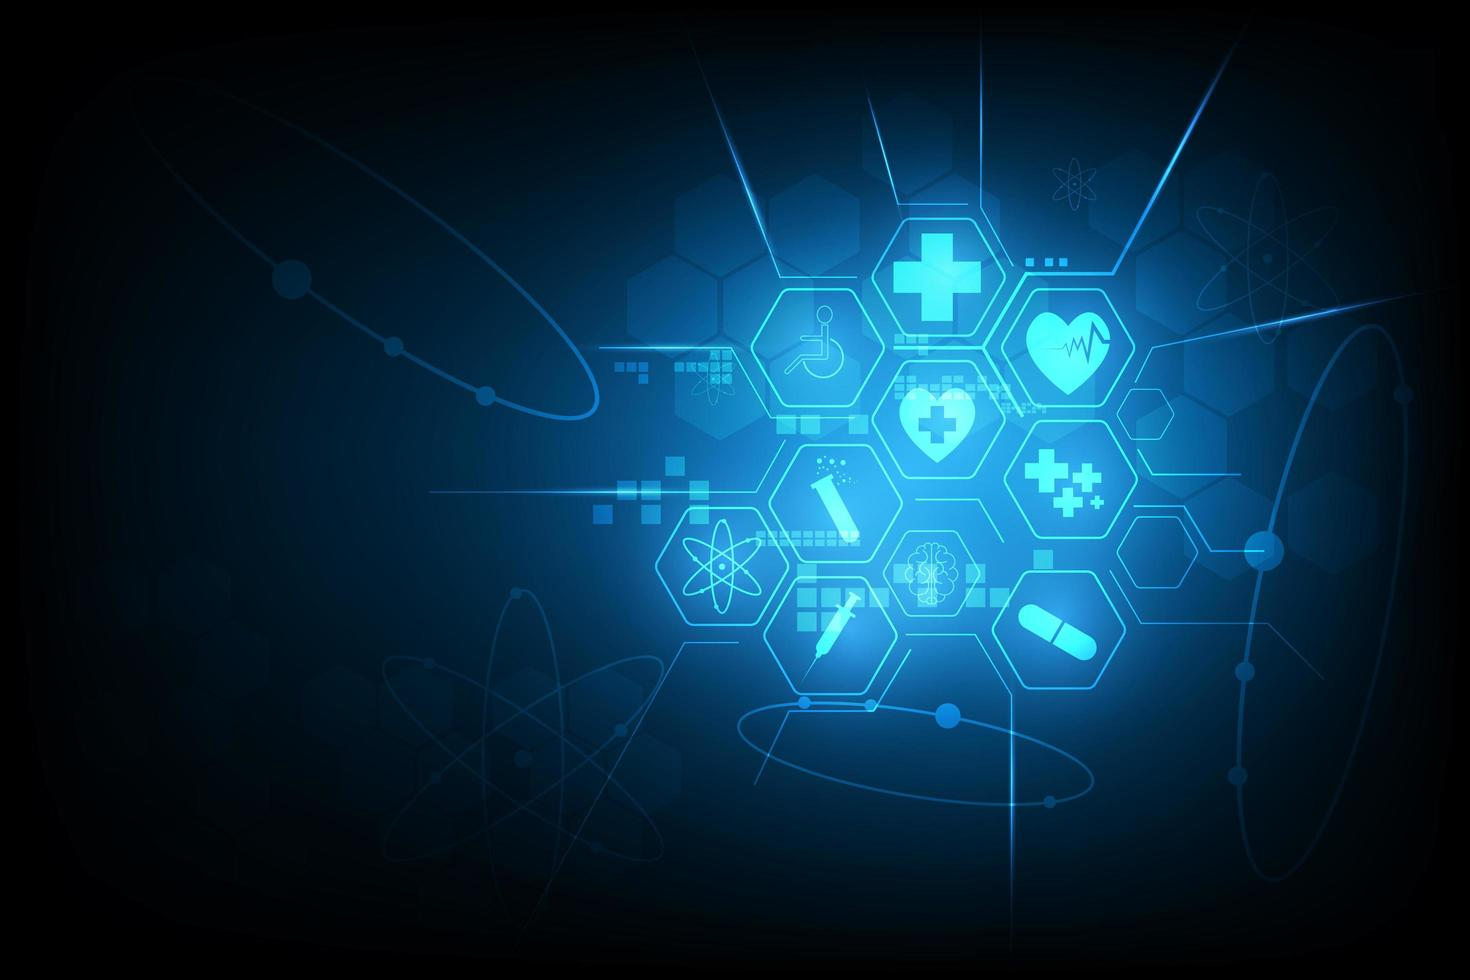 Glowing blue hexagon medical icon design vector